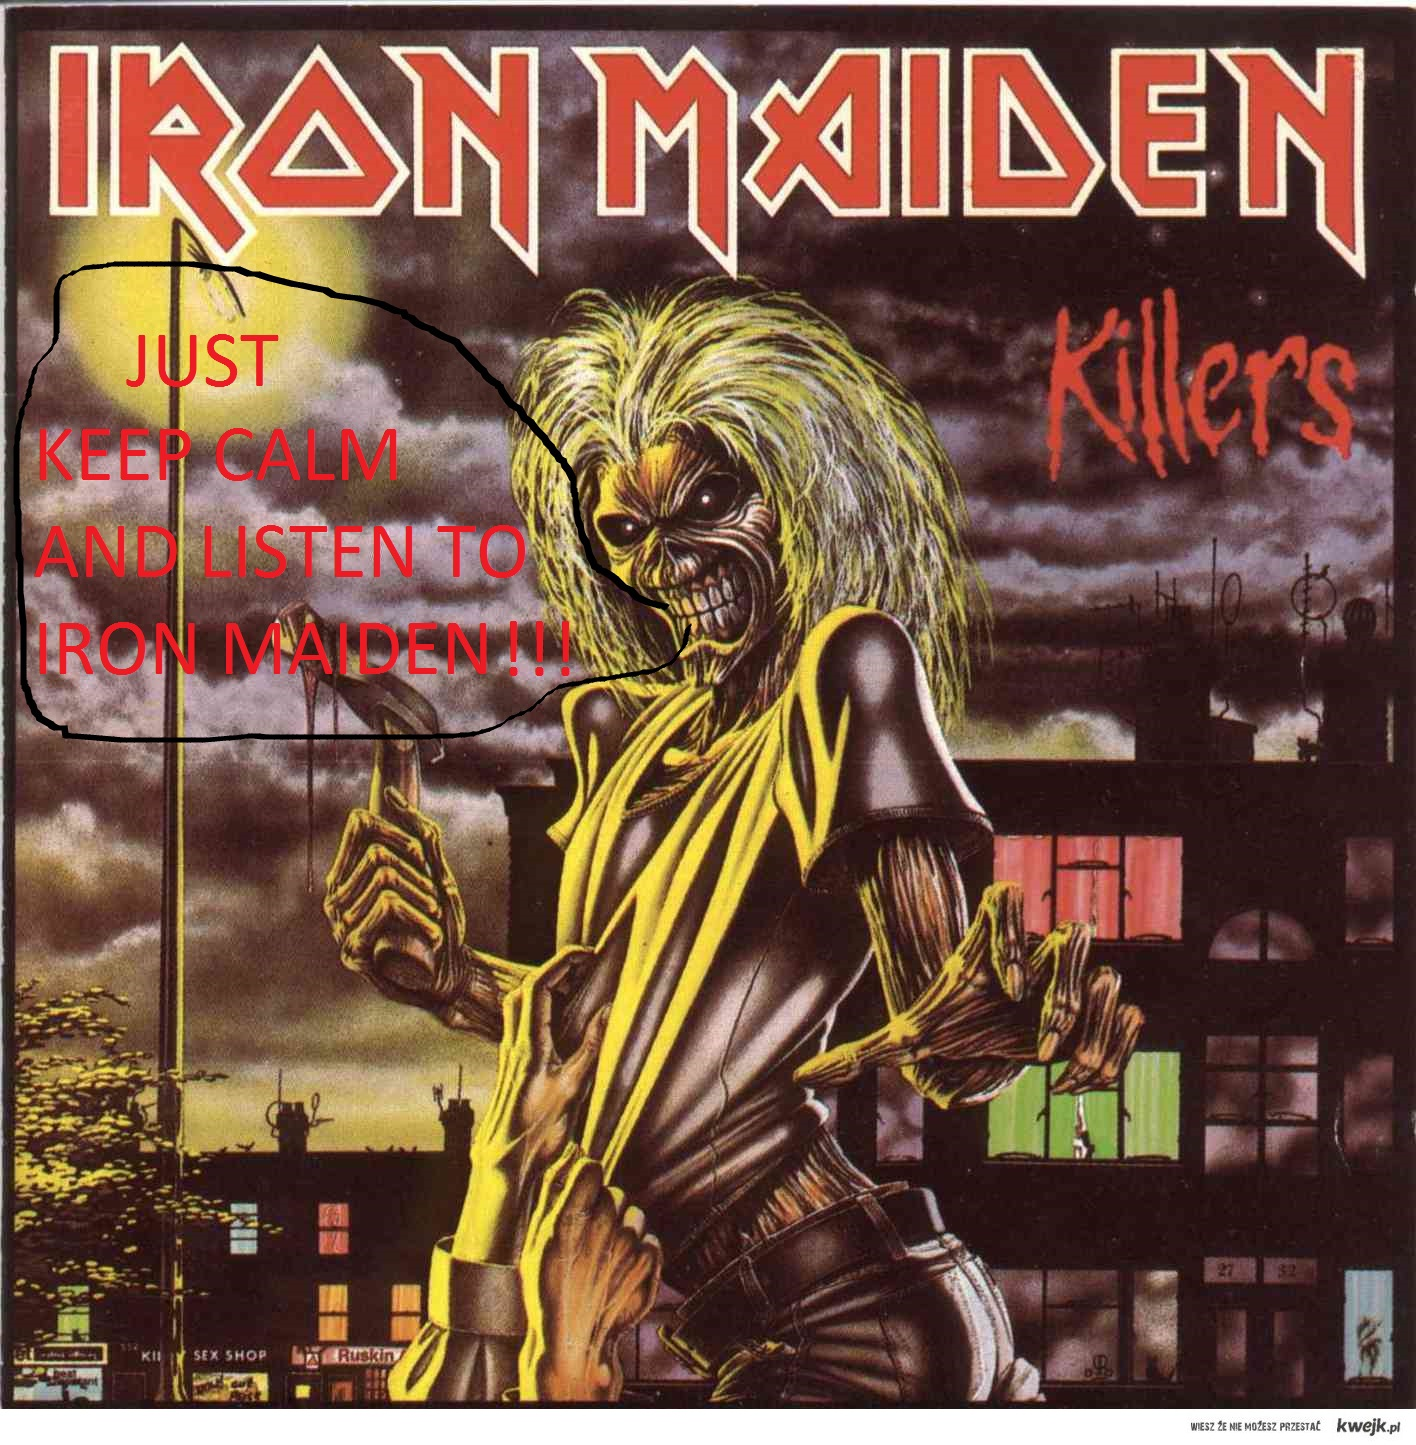 Up the Irons !!!